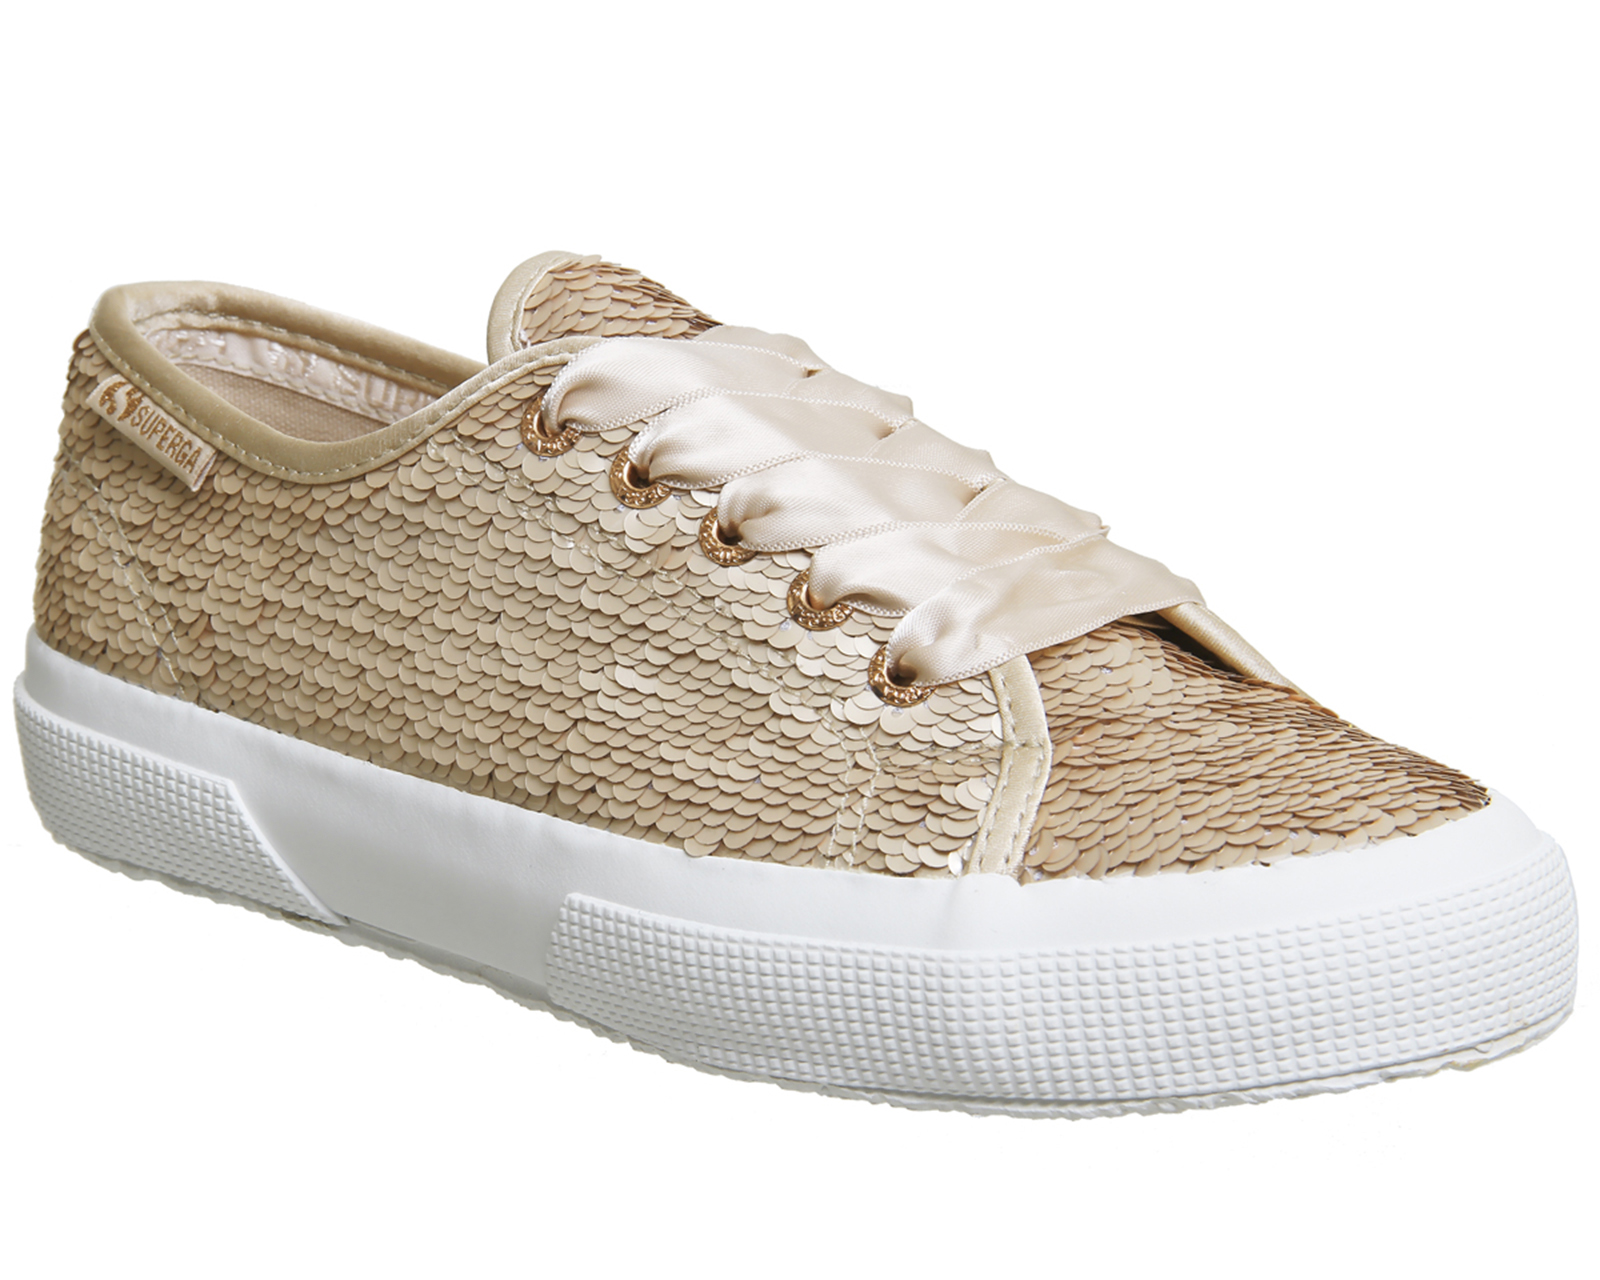 Sentinel Womens Superga 2750 Trainers ROSE GOLD MATTE ROSE SEQUIN Trainers  Shoes 27988f7899